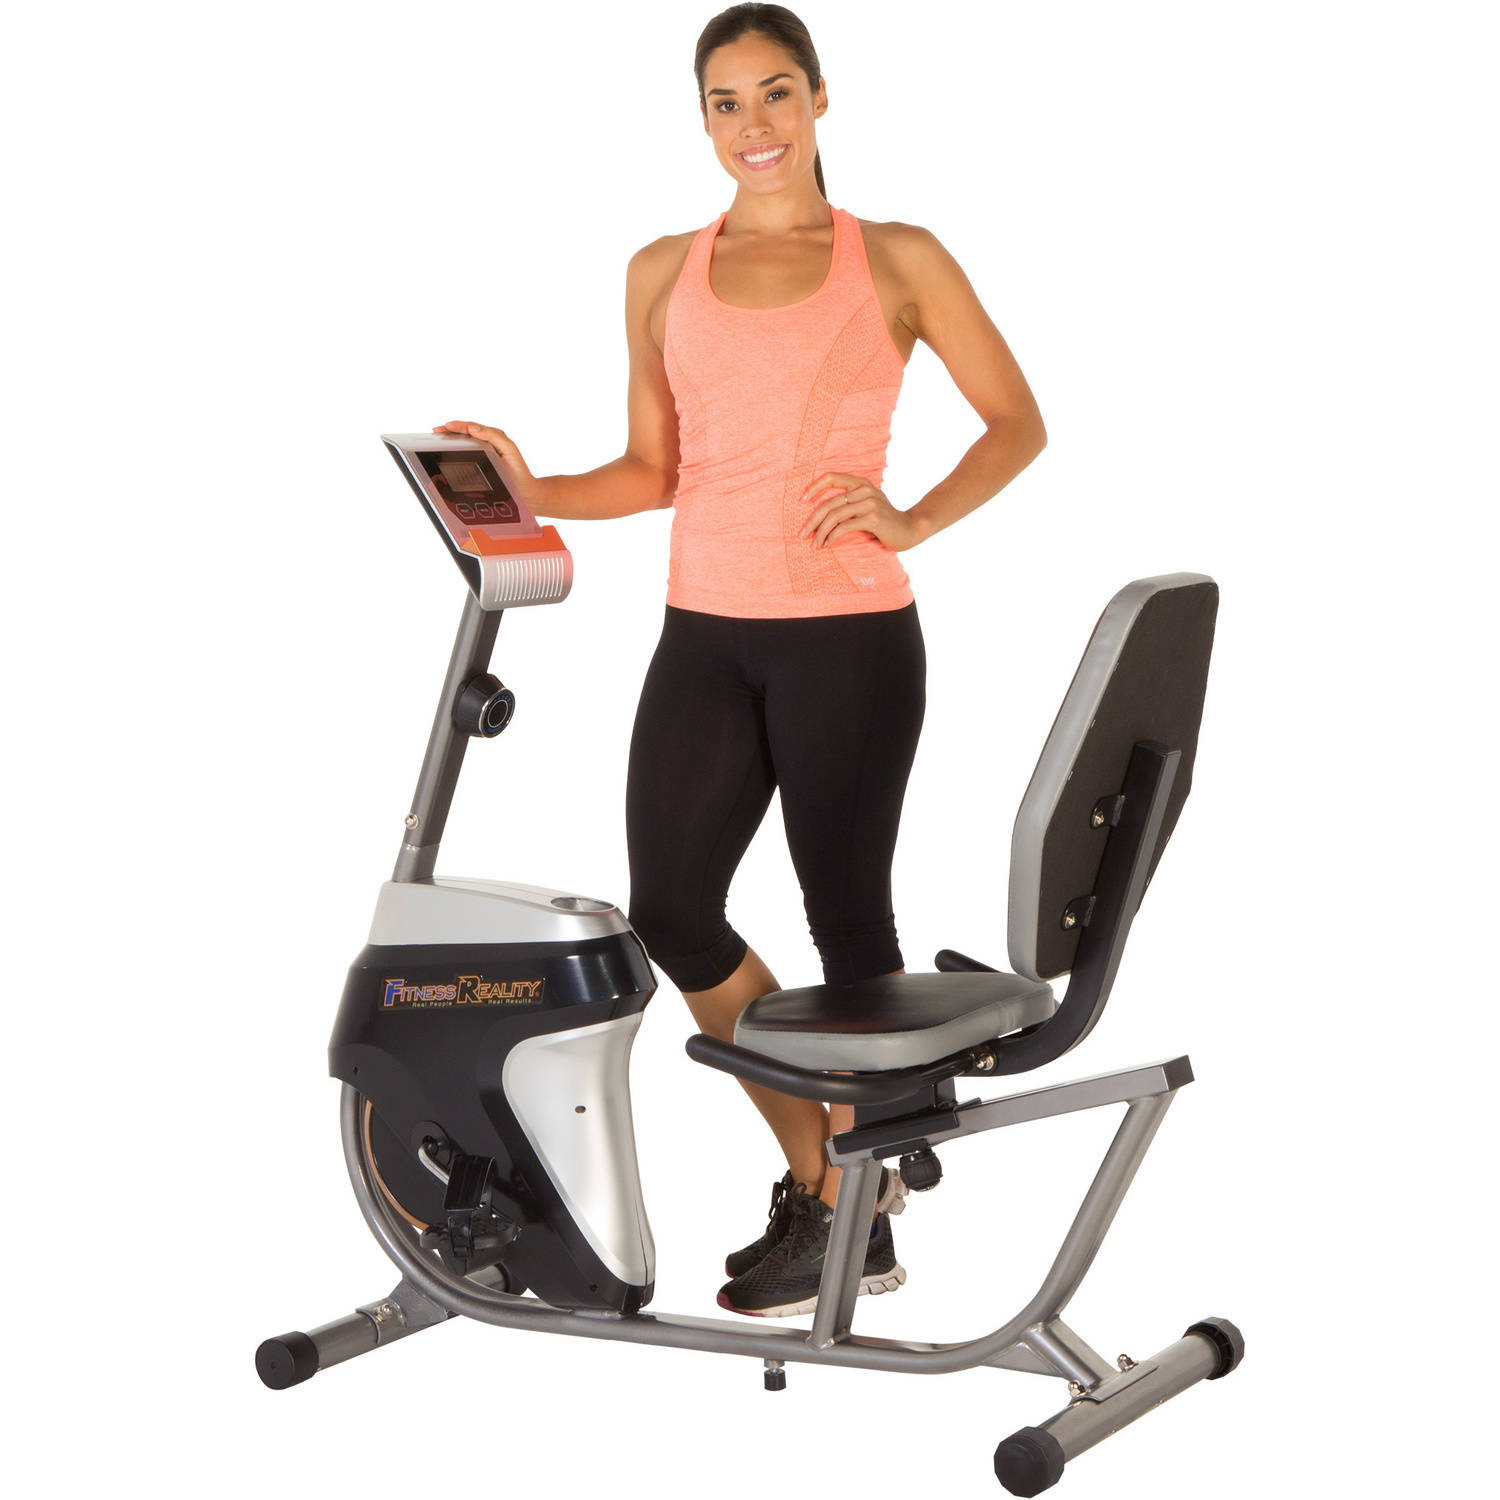 Fitness Reality R4000 Recumbent Exercise Bike with Workout Goal Setting Computer